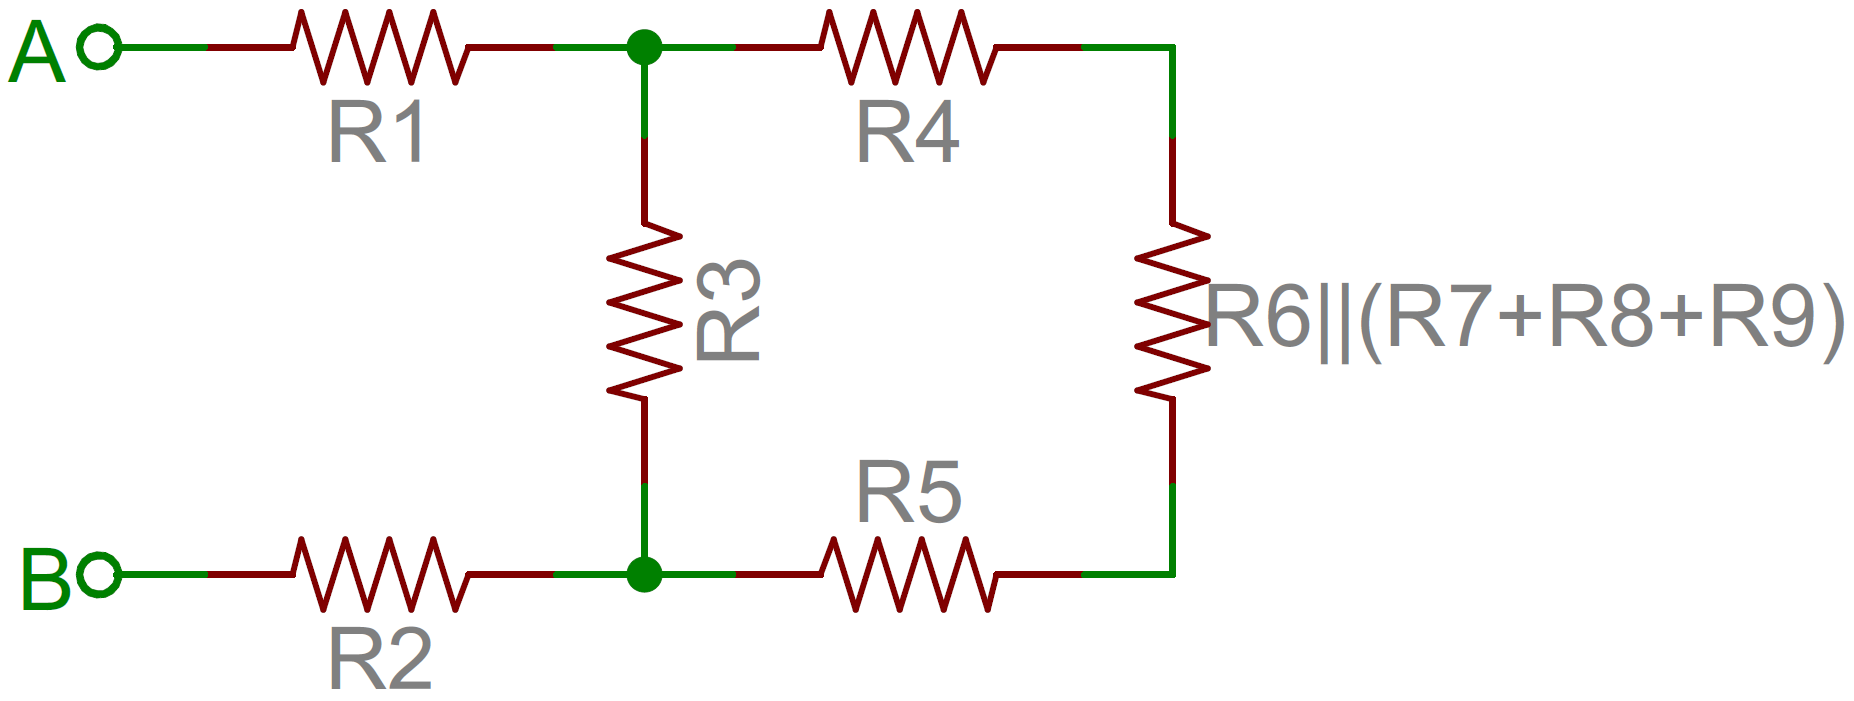 Resistors Image For A Find The Open Circuit Voltage Across Terminals And B Resistor Network Simplified